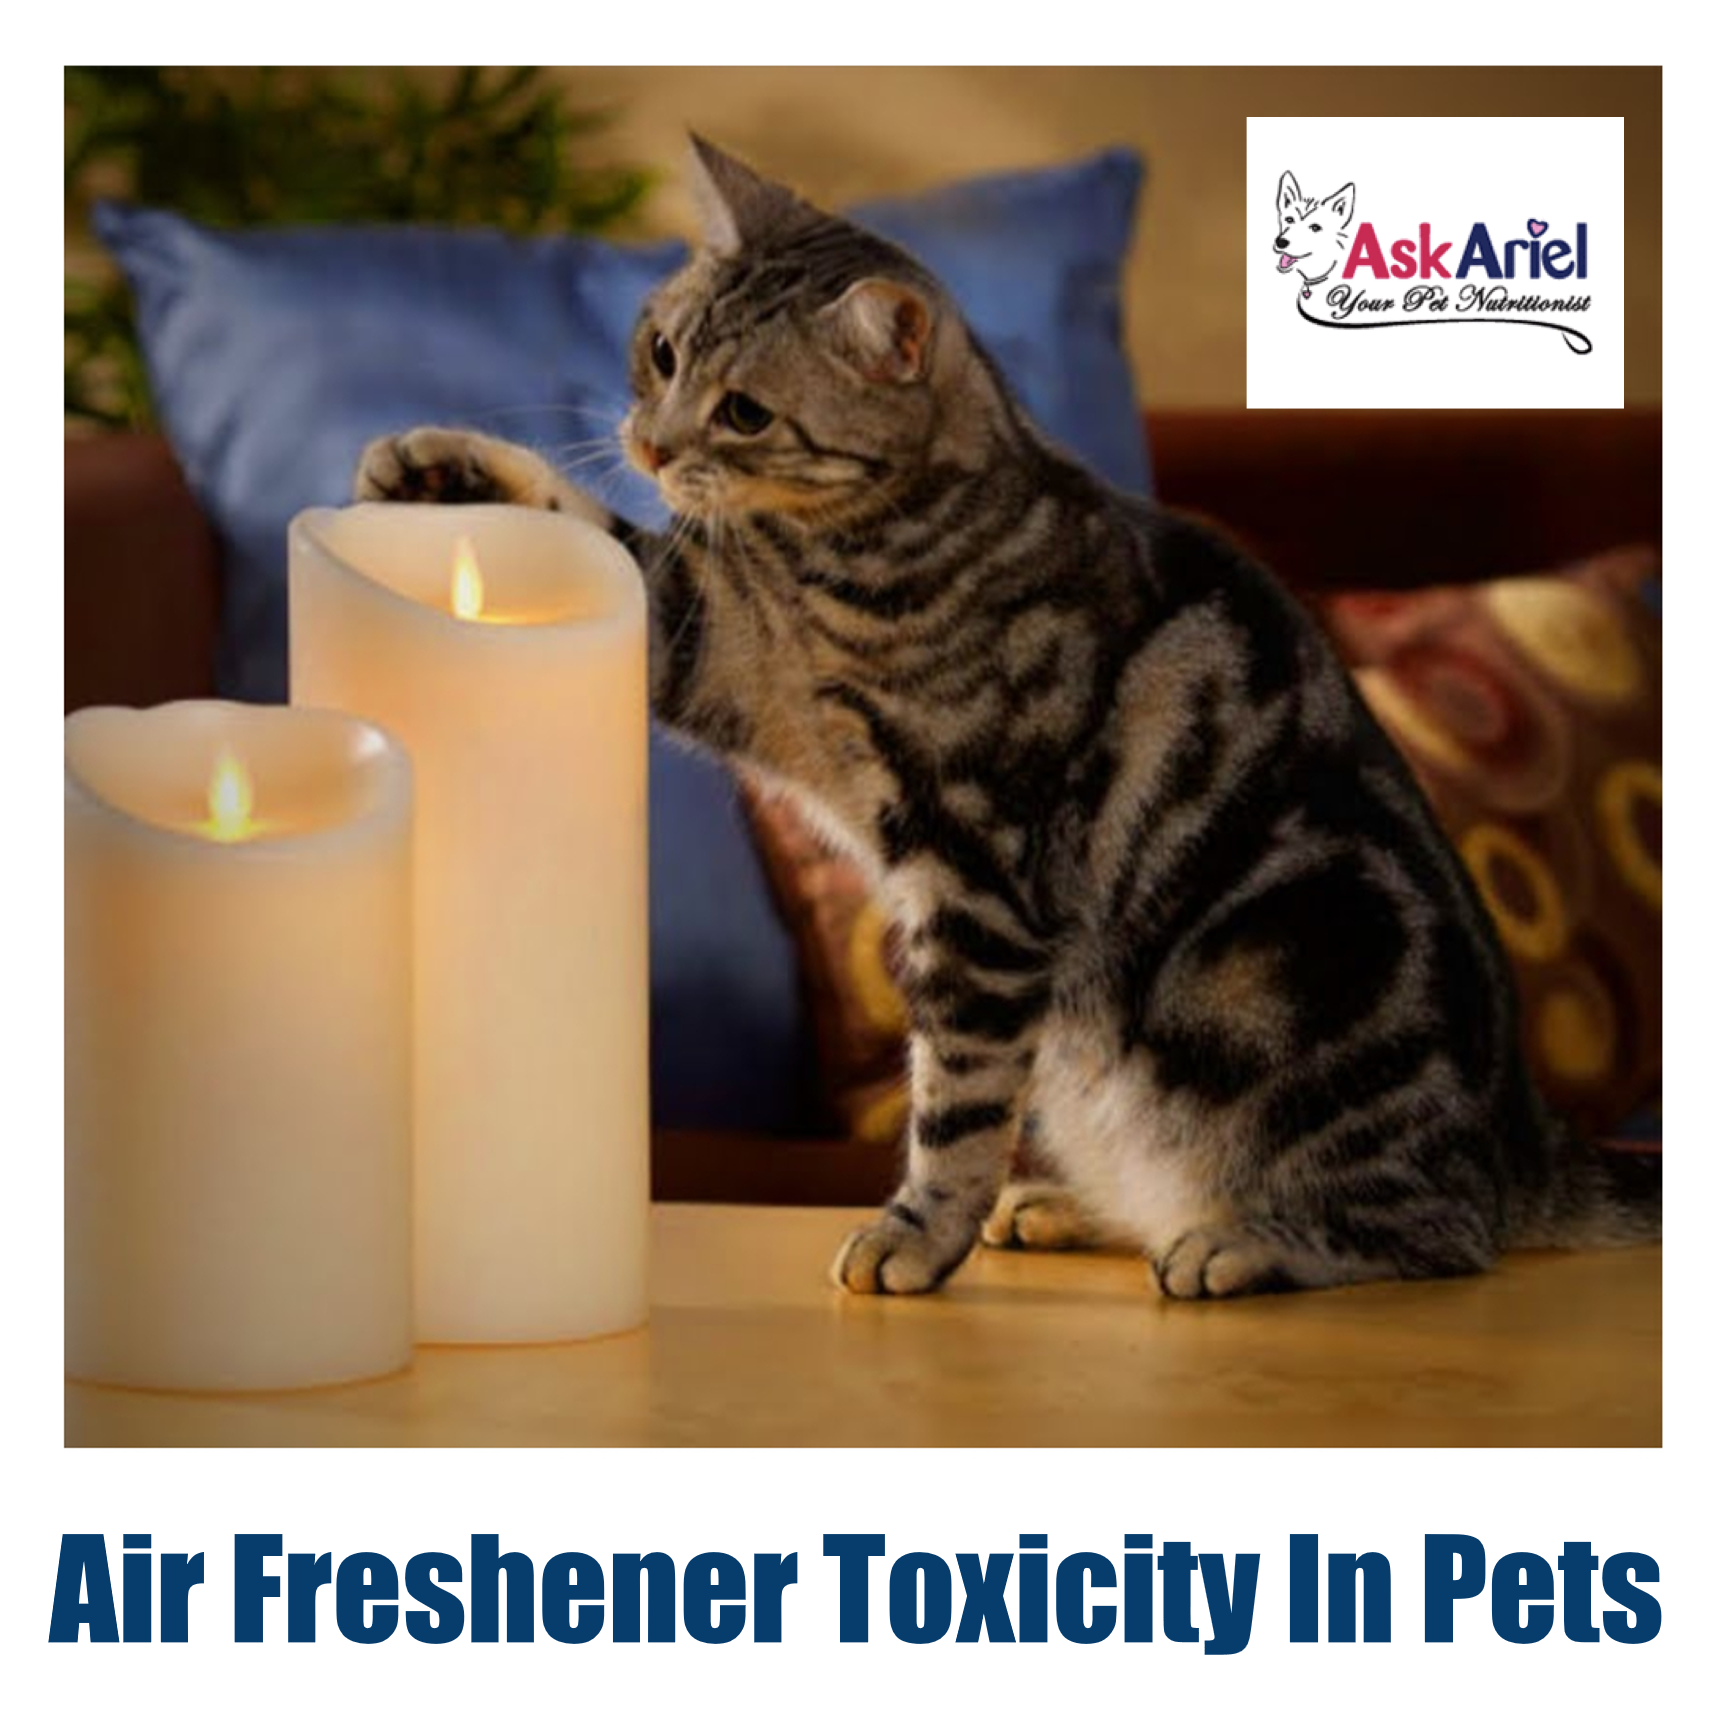 Air Freshener Toxicity In Pets Airborne Toxins With Cats Dogs Air Airborne Cats Dogs Freshener Pets Toxicity Toxins In 2020 Air Freshener Pets Your Pet